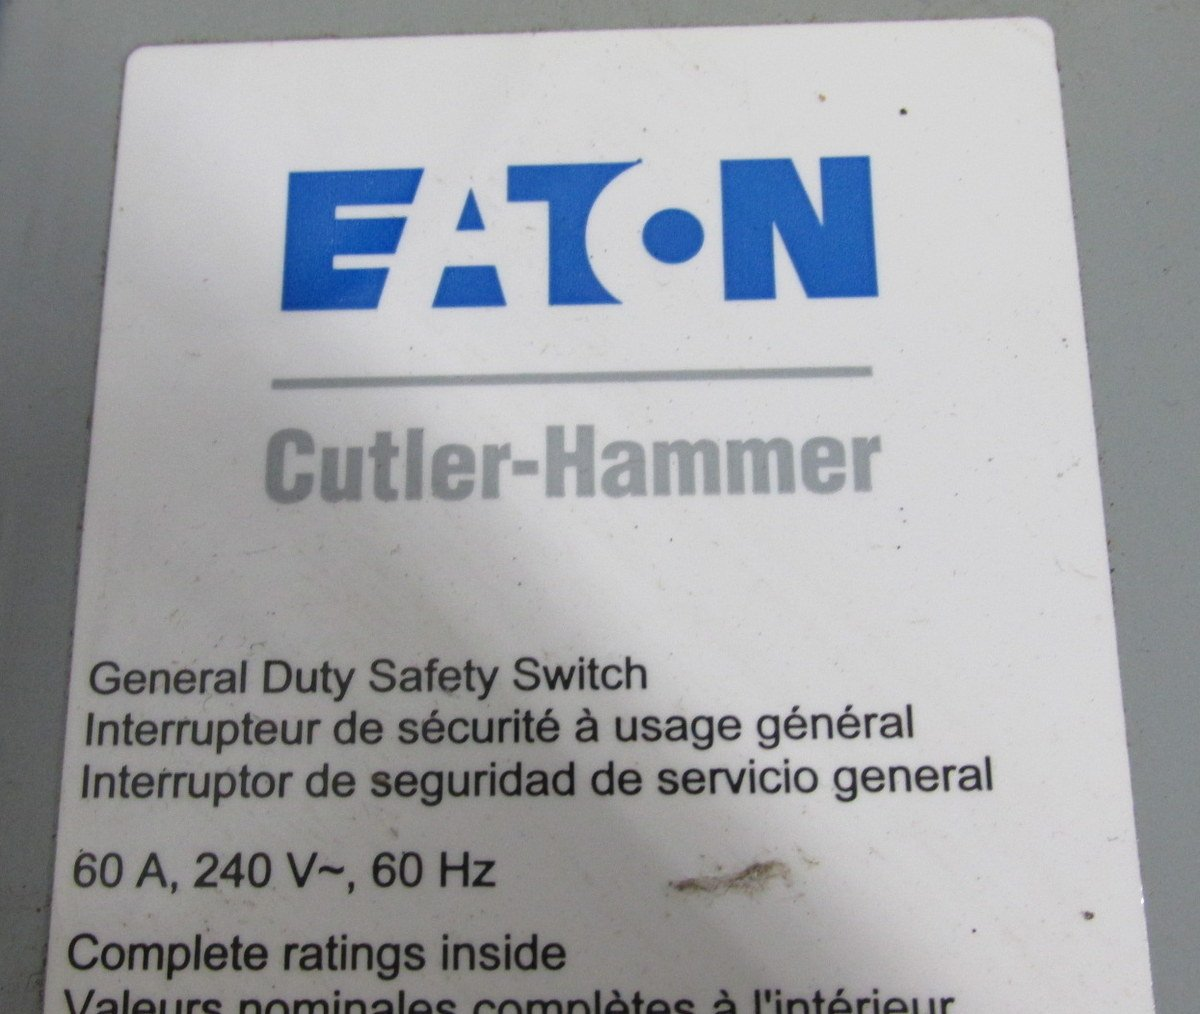 Eaton DG222UGB 2 Wire 2 Pole Non-Fusible B Series General-Duty Safety Switch 240 Volt AC 60 Amp NEMA 1 by Eaton